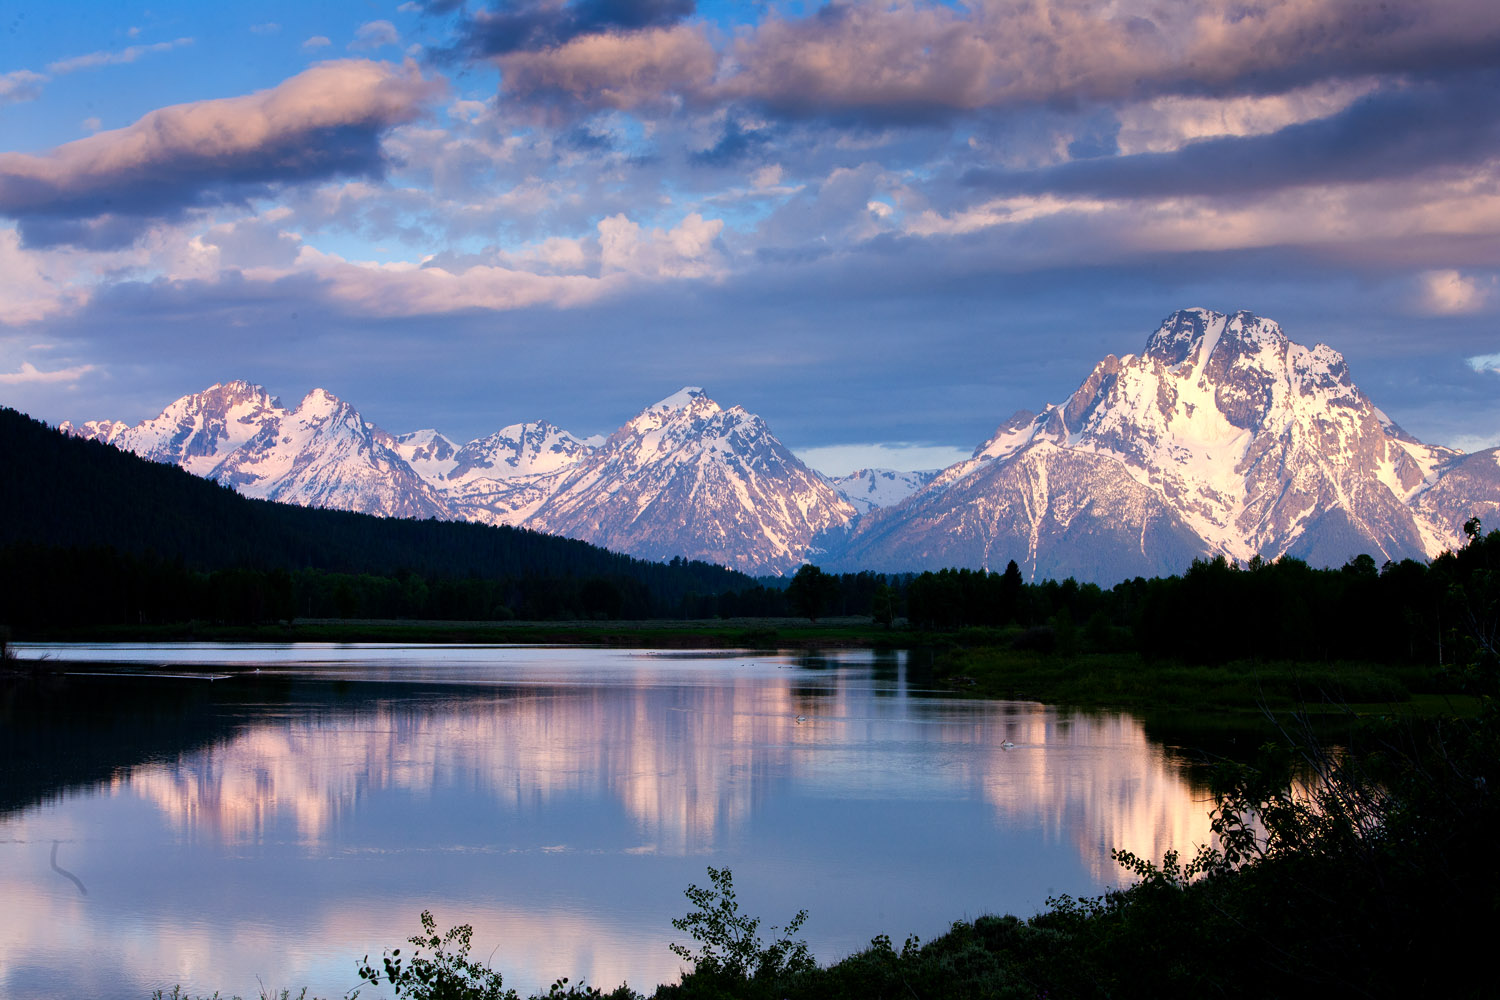 mount moran, tetons, oxbow bend, sunrise, photo